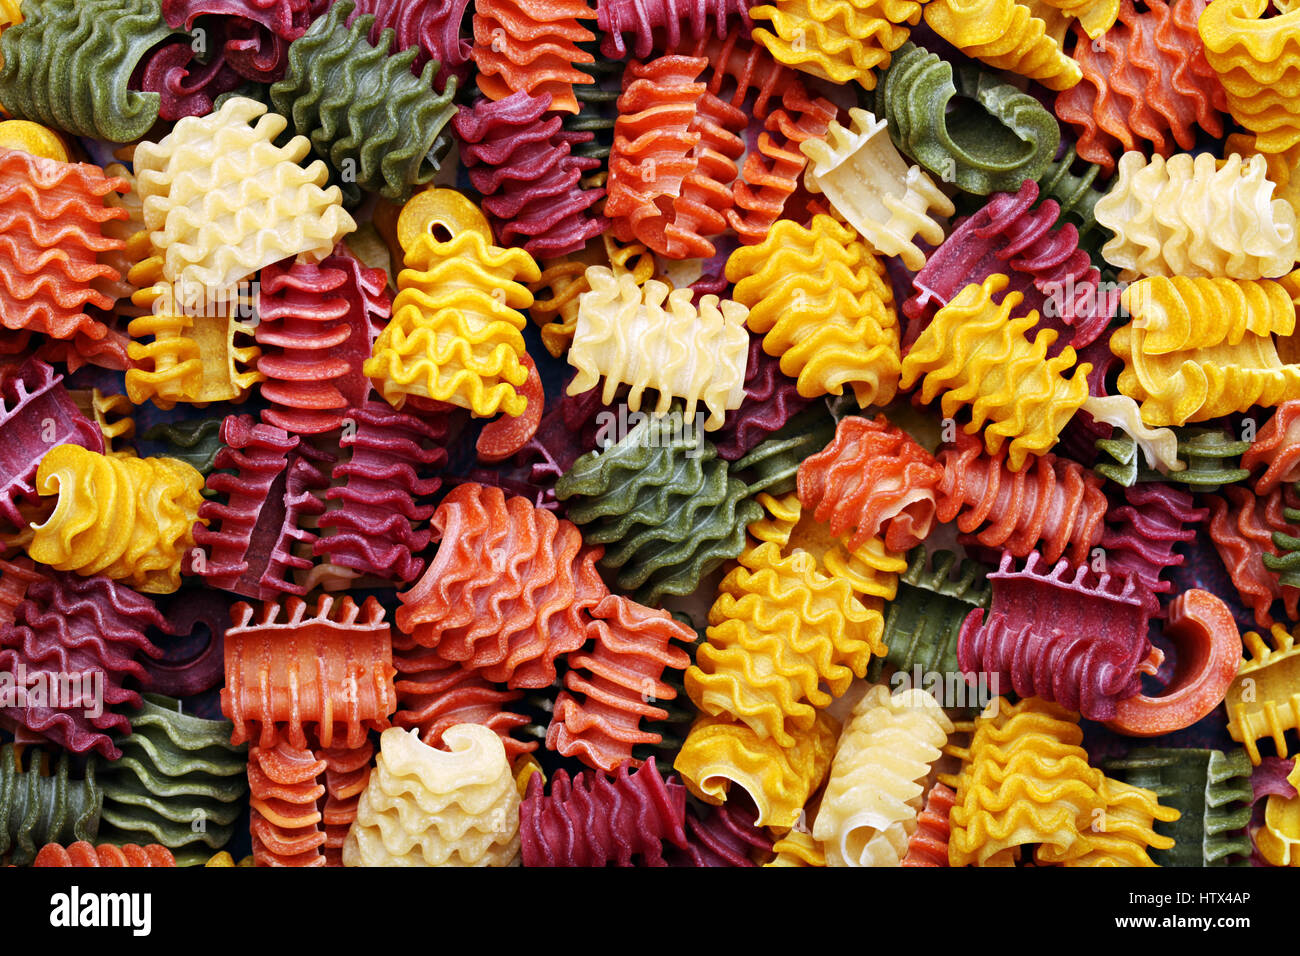 Background image of homemade traditional pasta texture. - Stock Image